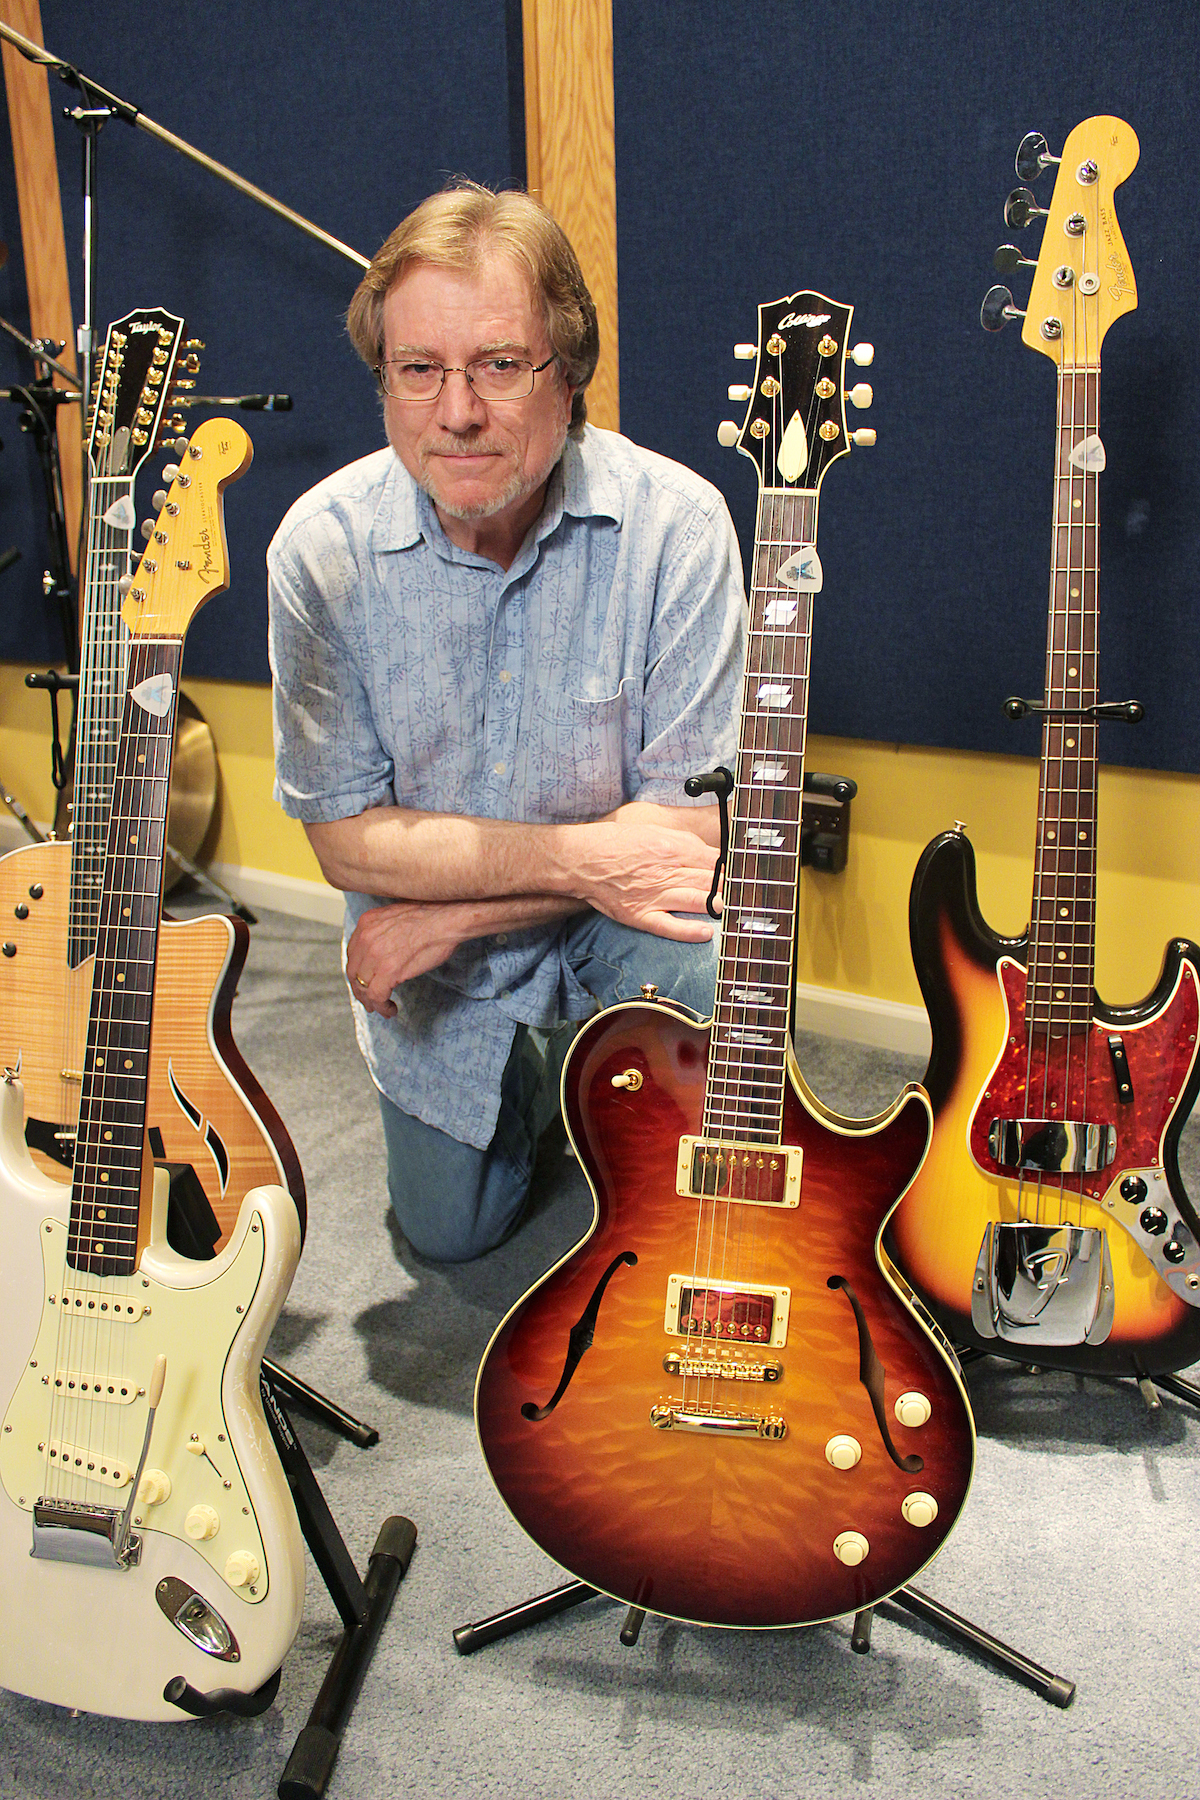 Eric-studio-guitars.jpg